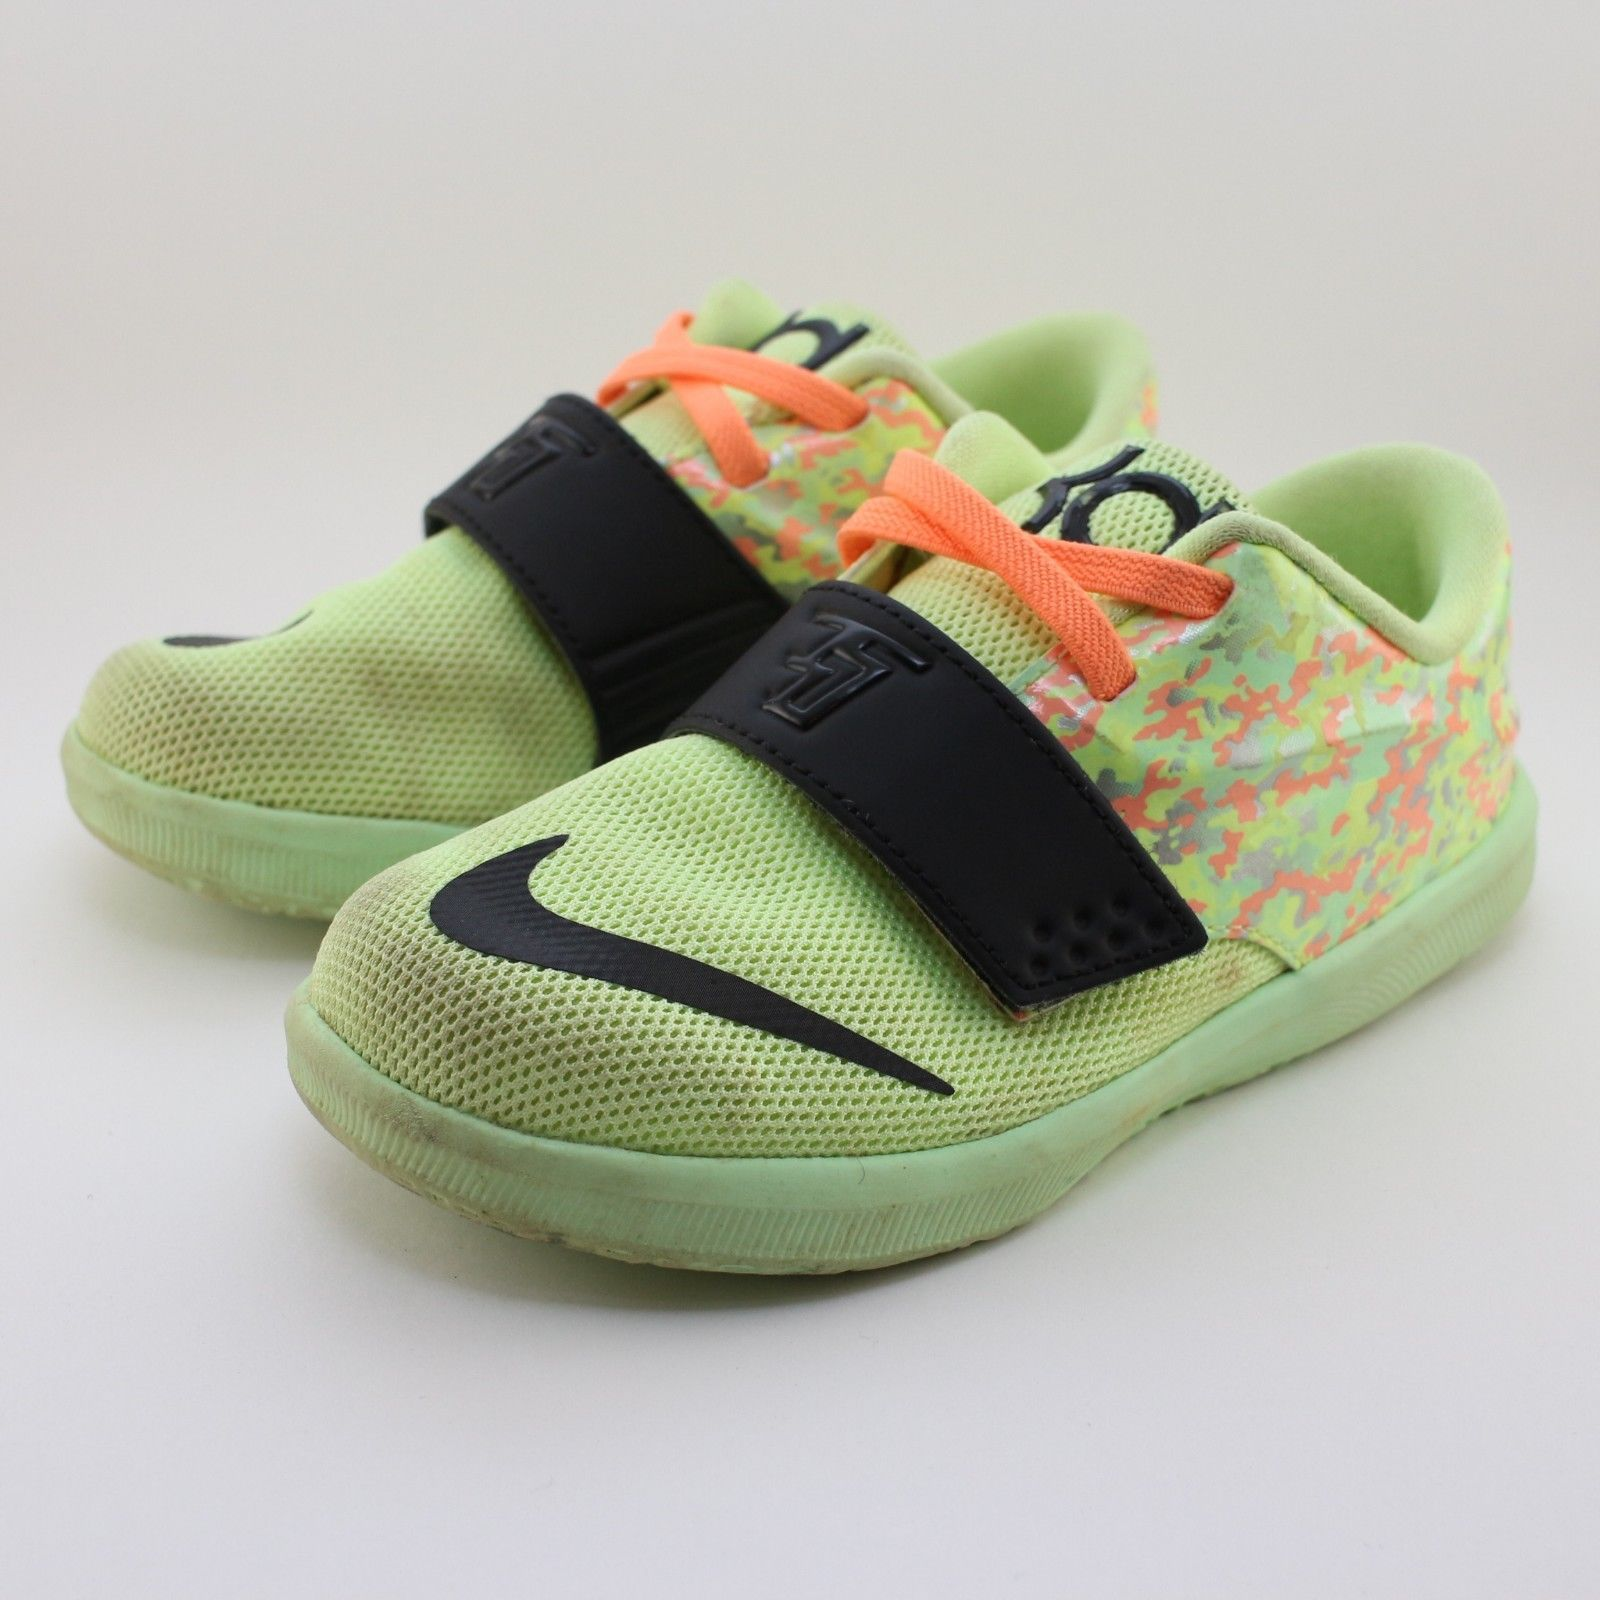 a9779f46b199 ... official nike kevin durant kd 7 easter lime black and 30 similar items.  57 be7ae